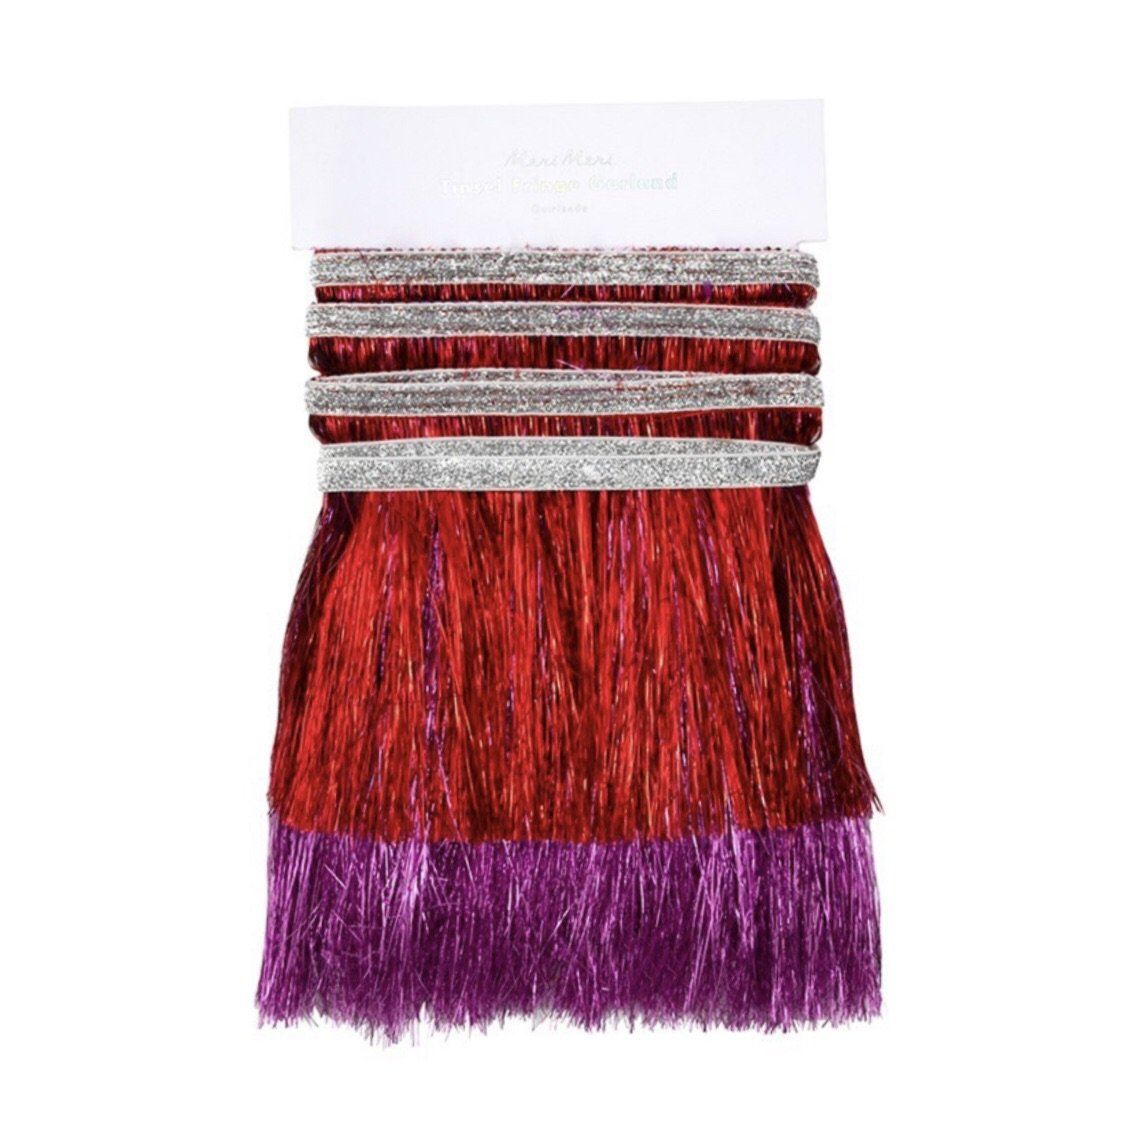 FRINGE GARLAND - RED + PINK **coming soon**